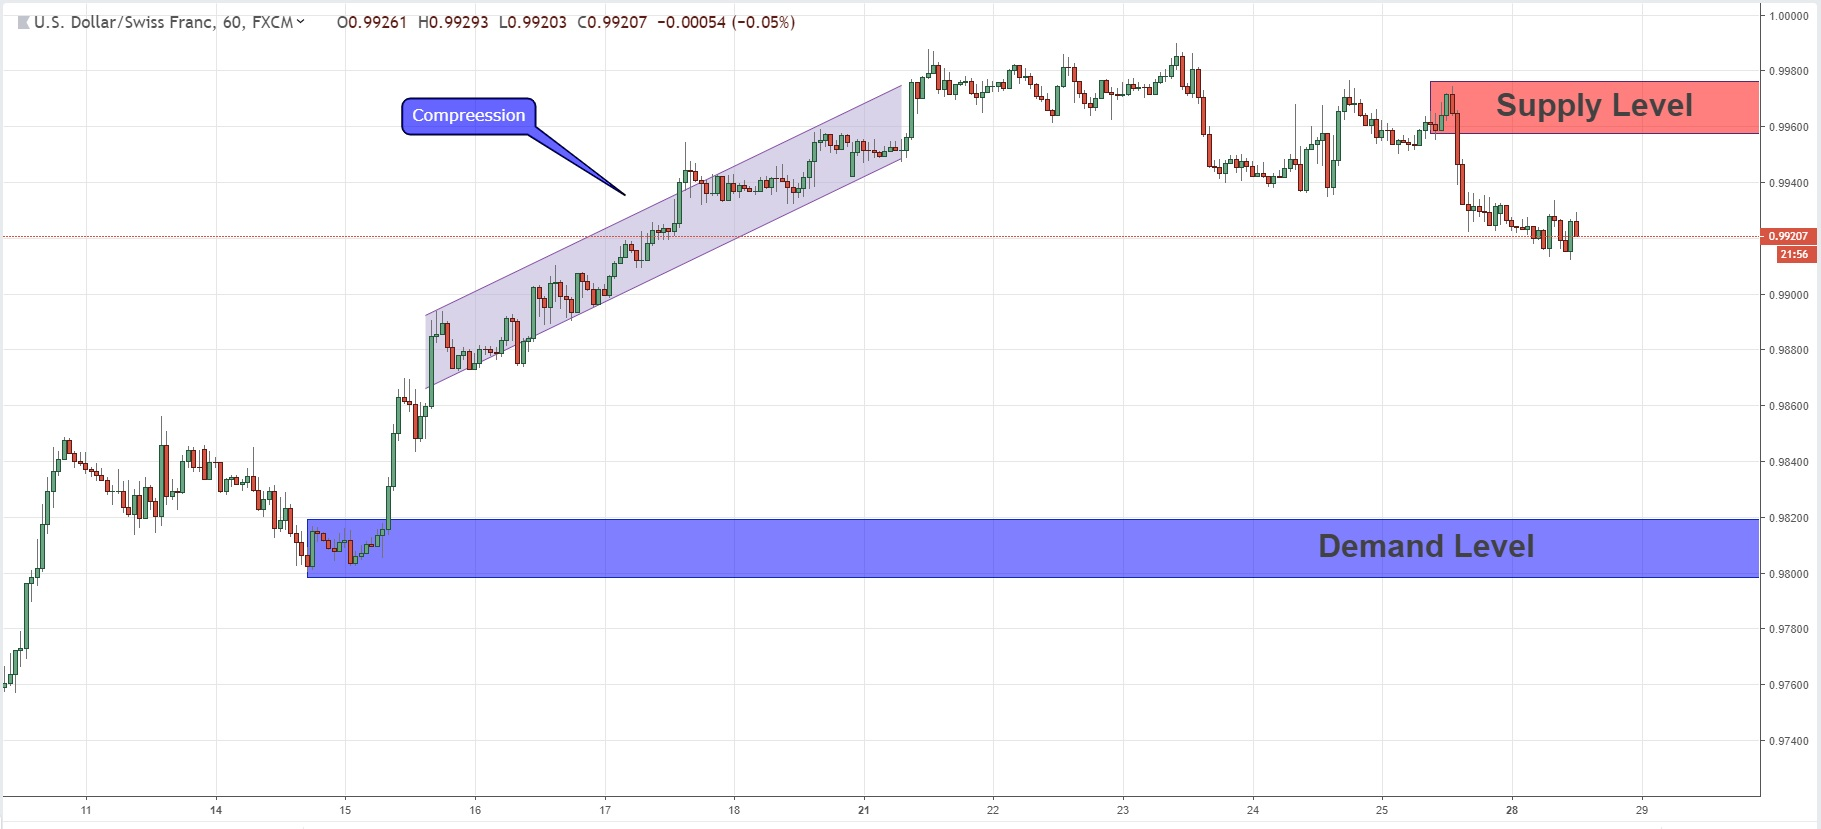 Price Goes Against Compression In USDCHF  28/01/2019